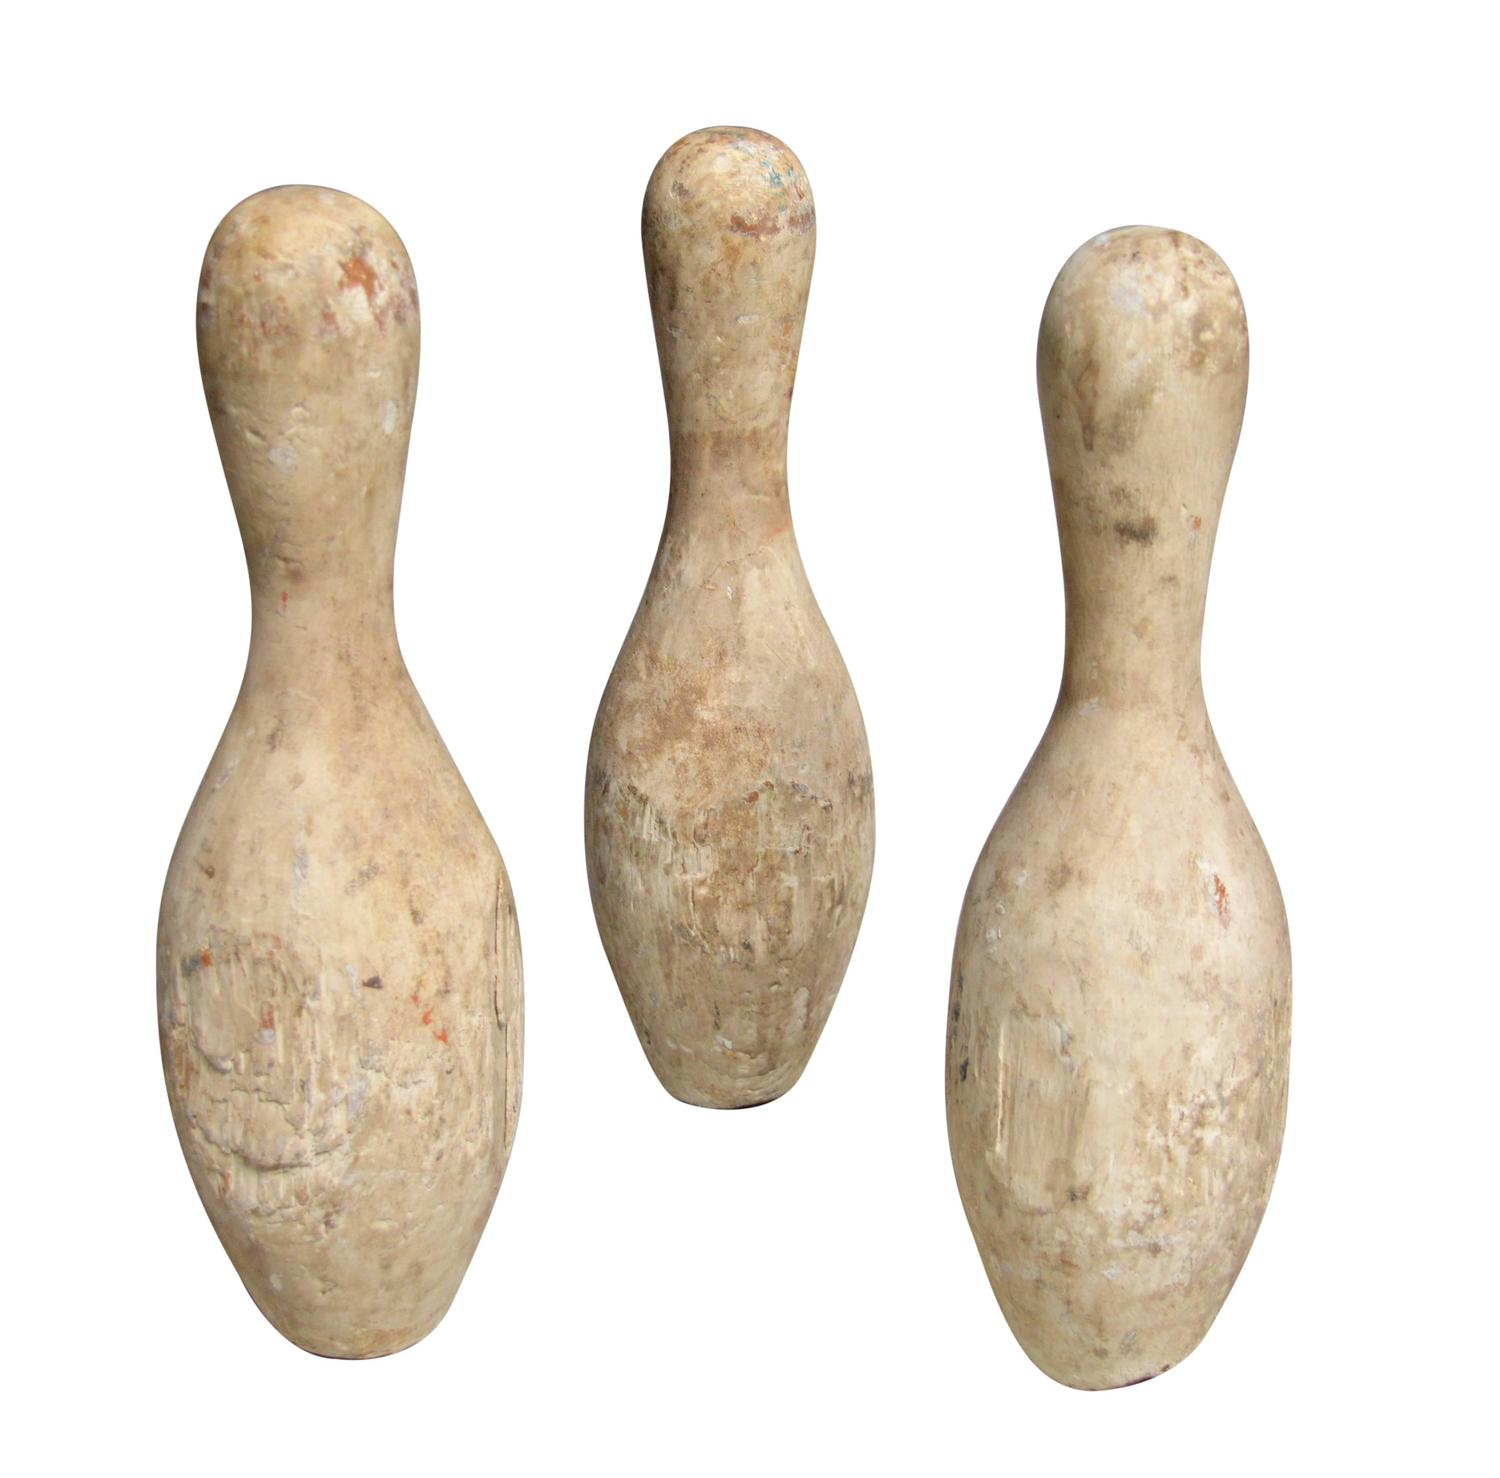 Wooden Bowling Pins For Sale Local Phone Voucher Code